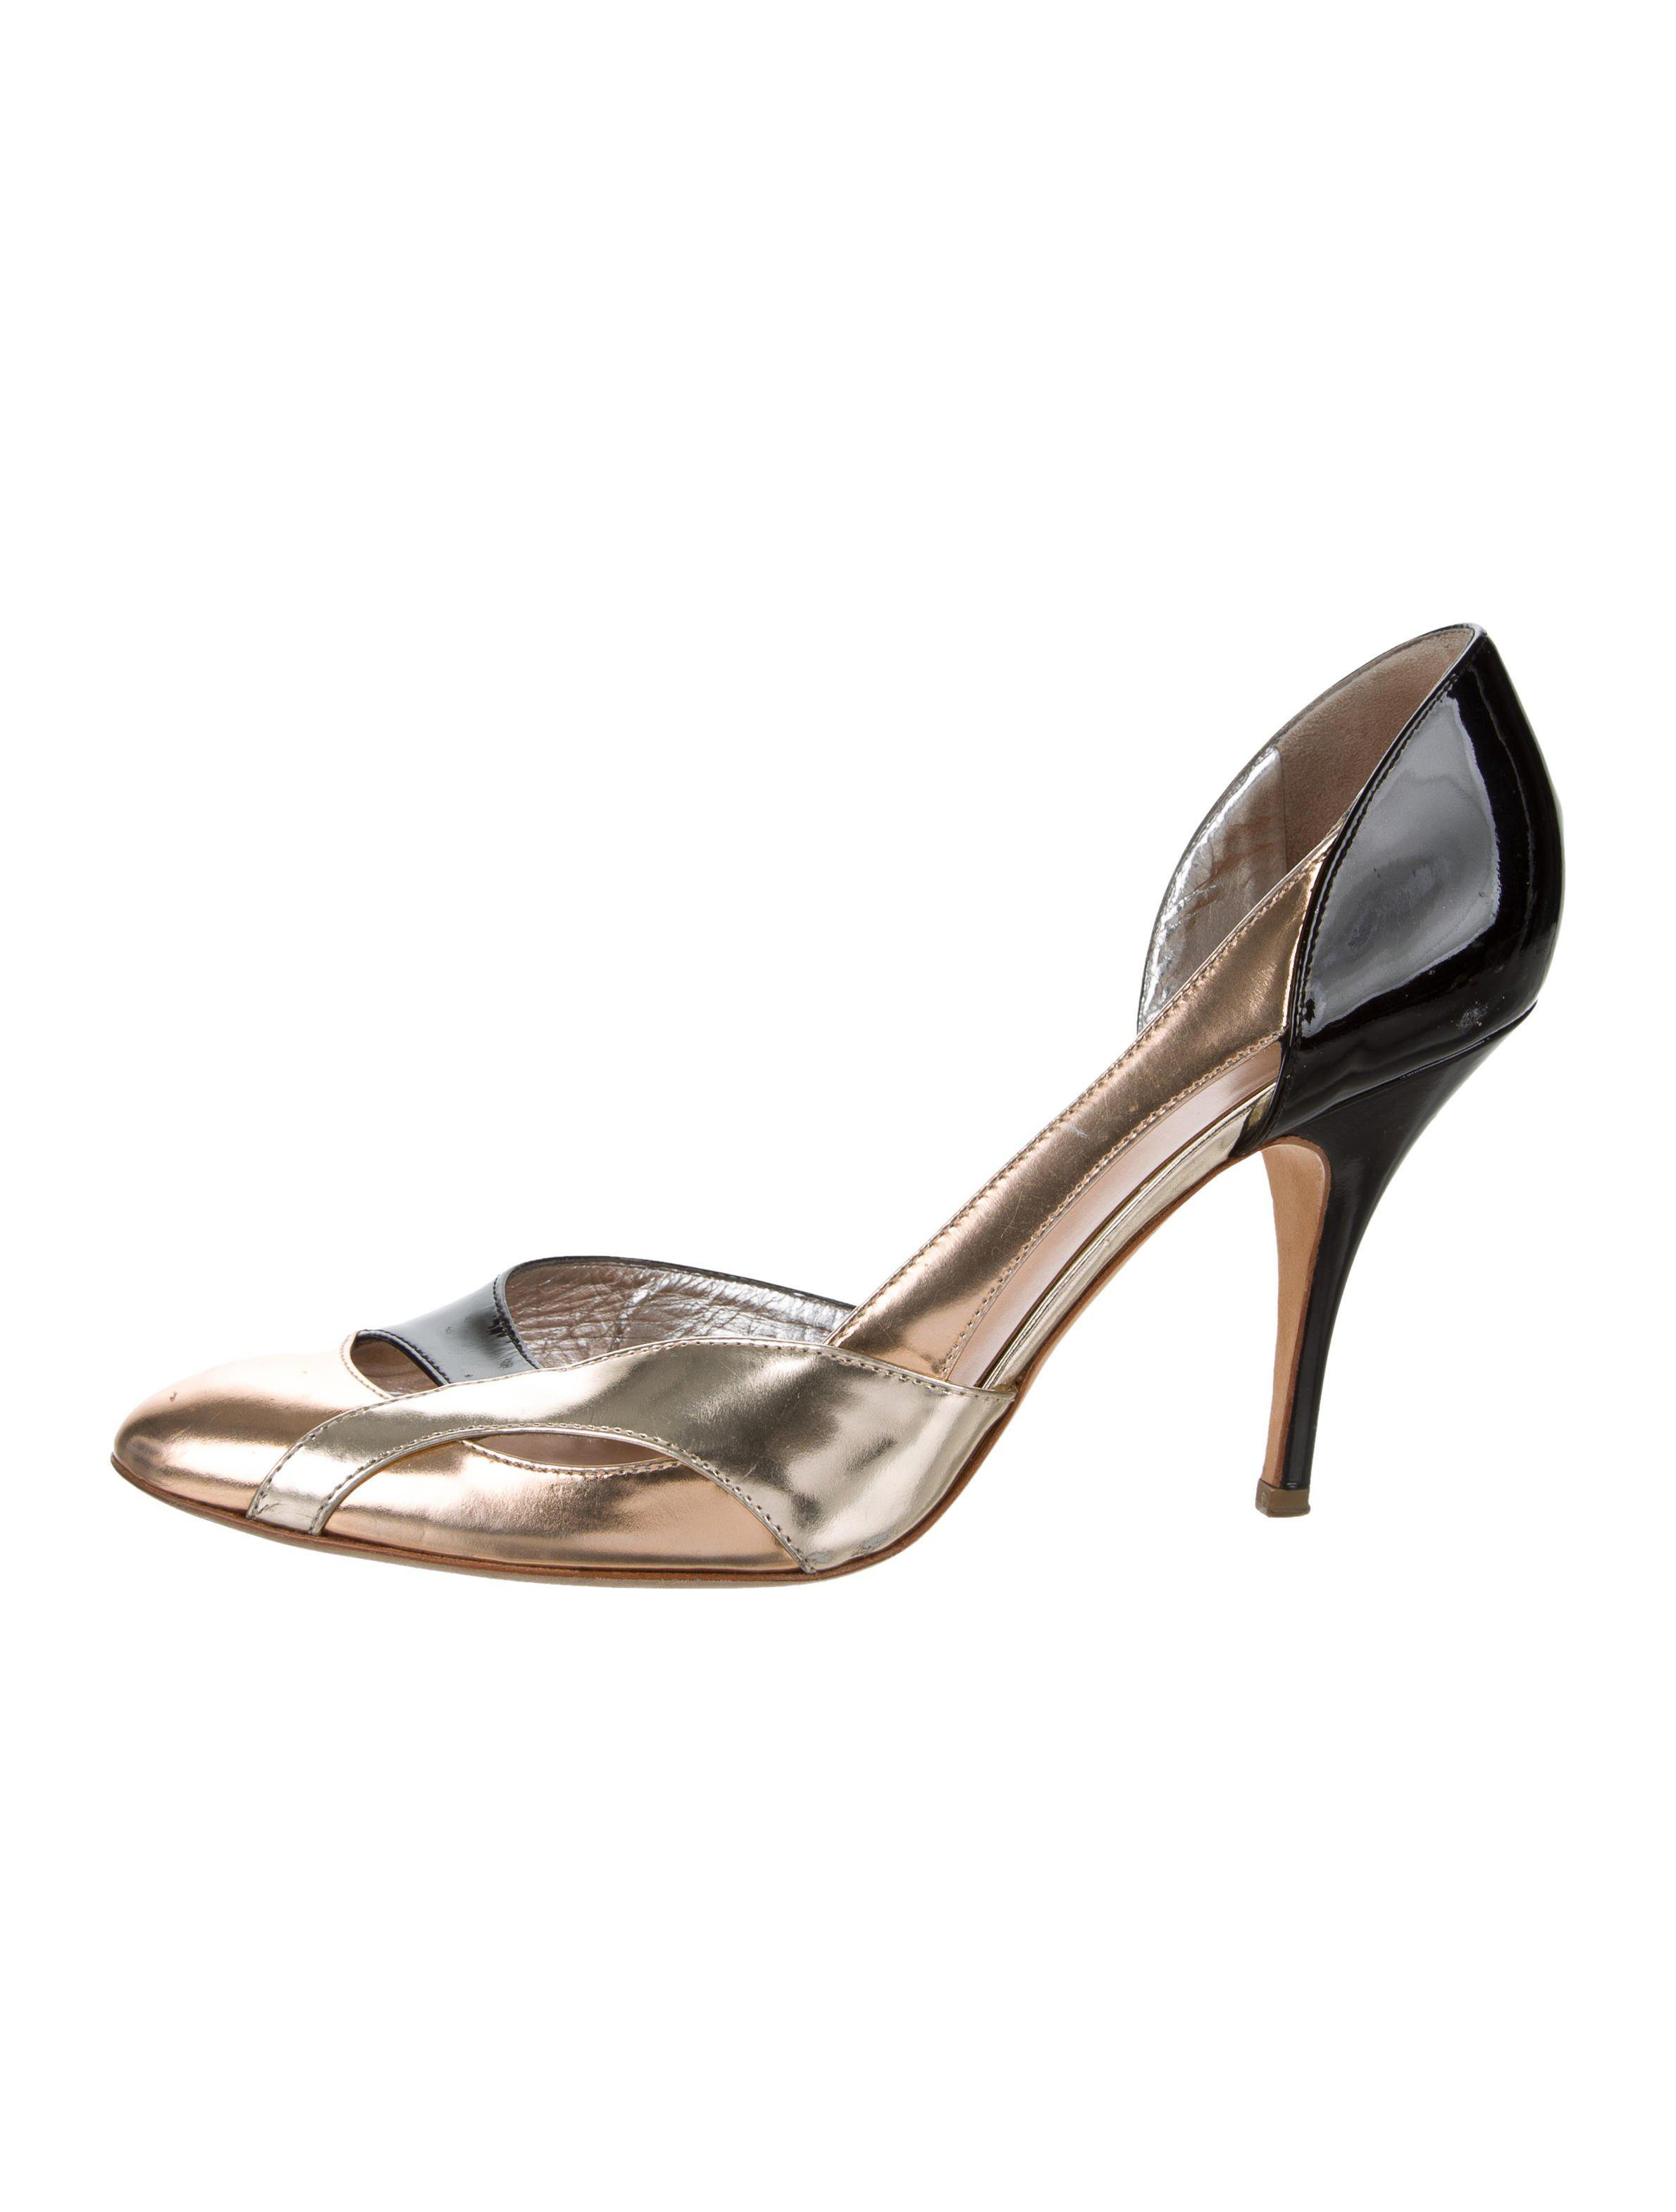 discount best prices clearance with mastercard Giuseppe Zanotti Metallic Cutout Pumps sale sneakernews sale from china free shipping latest RDju9fP2